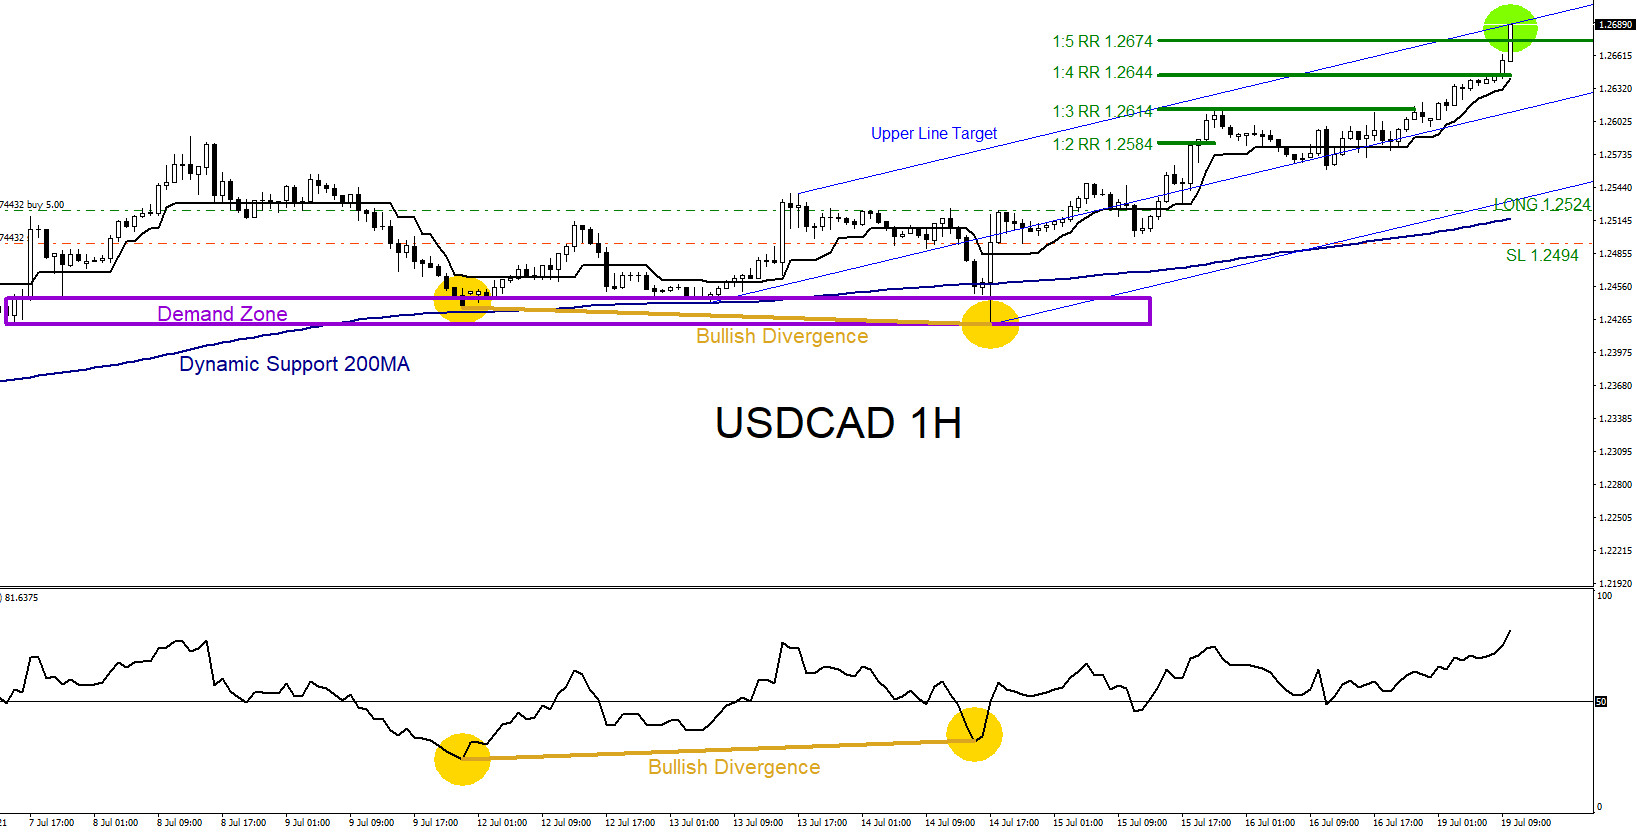 USDCAD Moves Higher as Expected